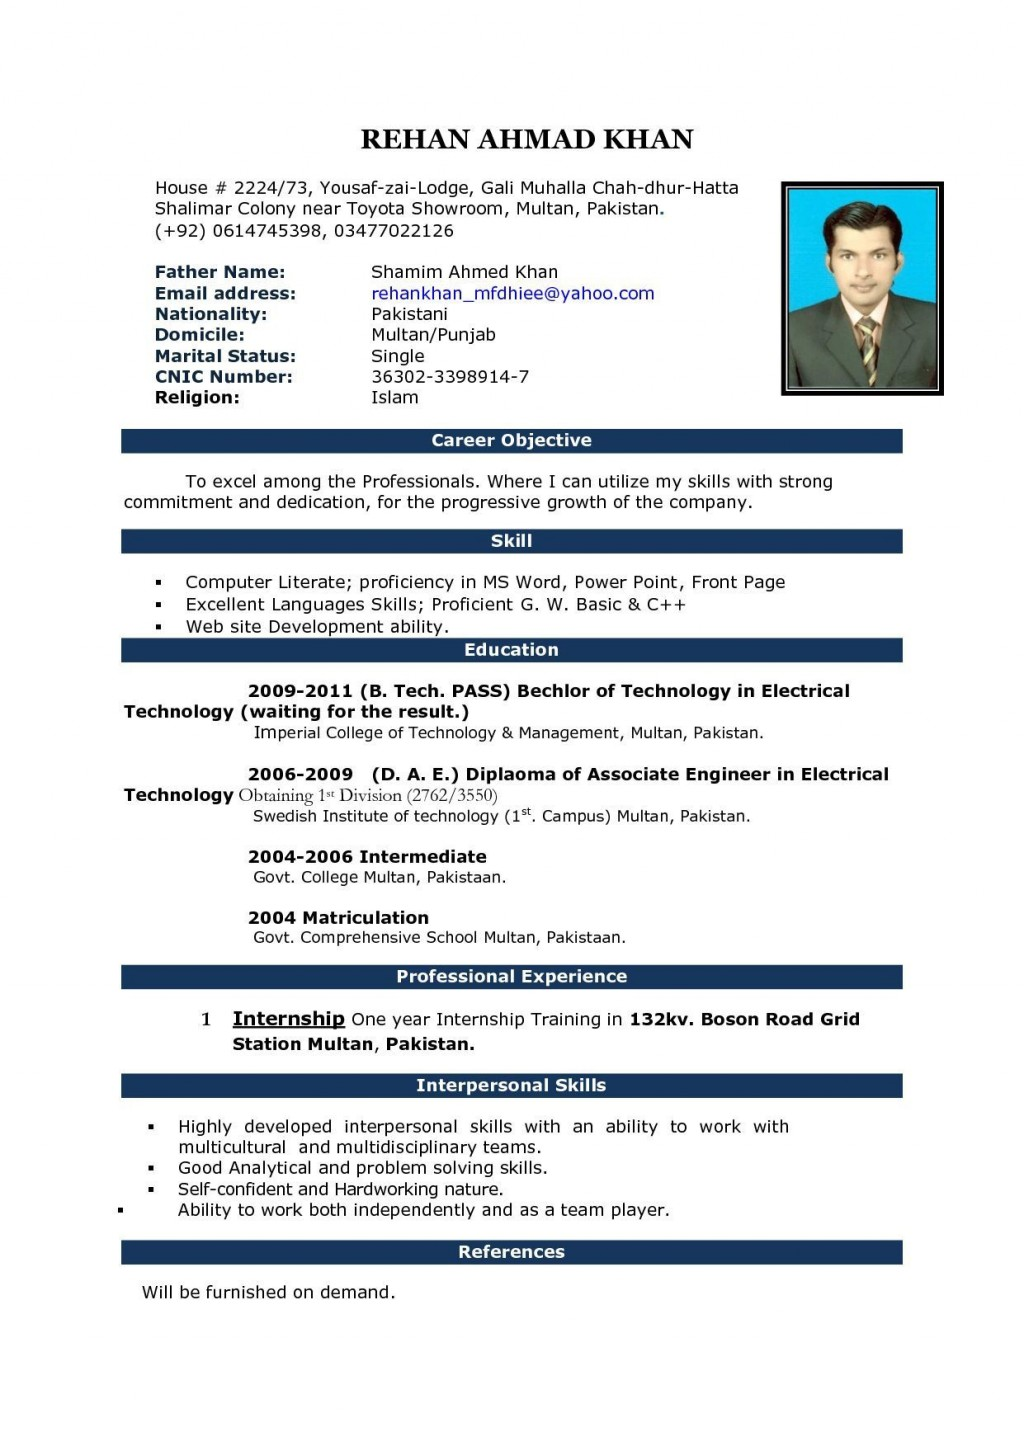 004 Unforgettable M Word 2010 Resume Template Image  Templates Office Free Microsoft DownloadLarge